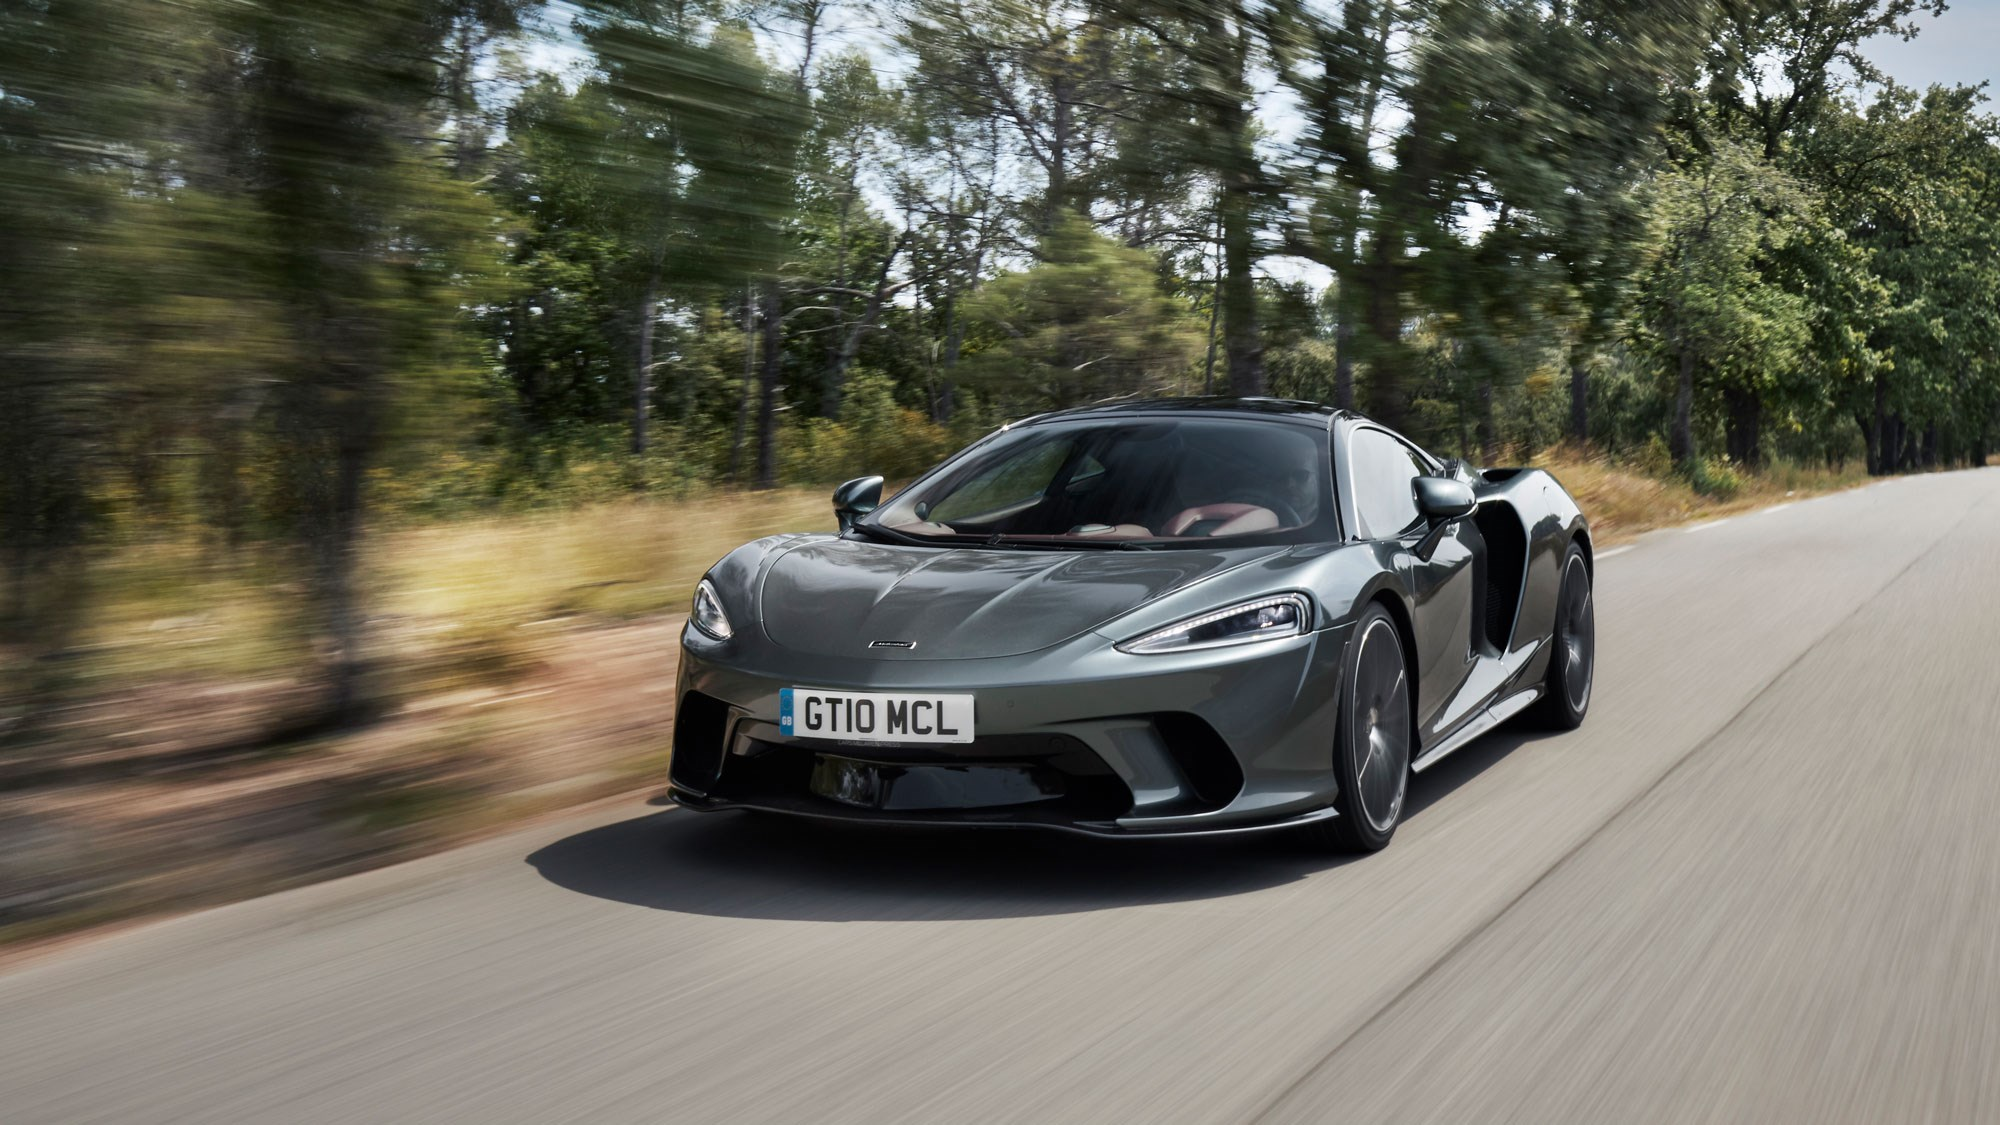 McLaren GT review: Woking's every day supercar?